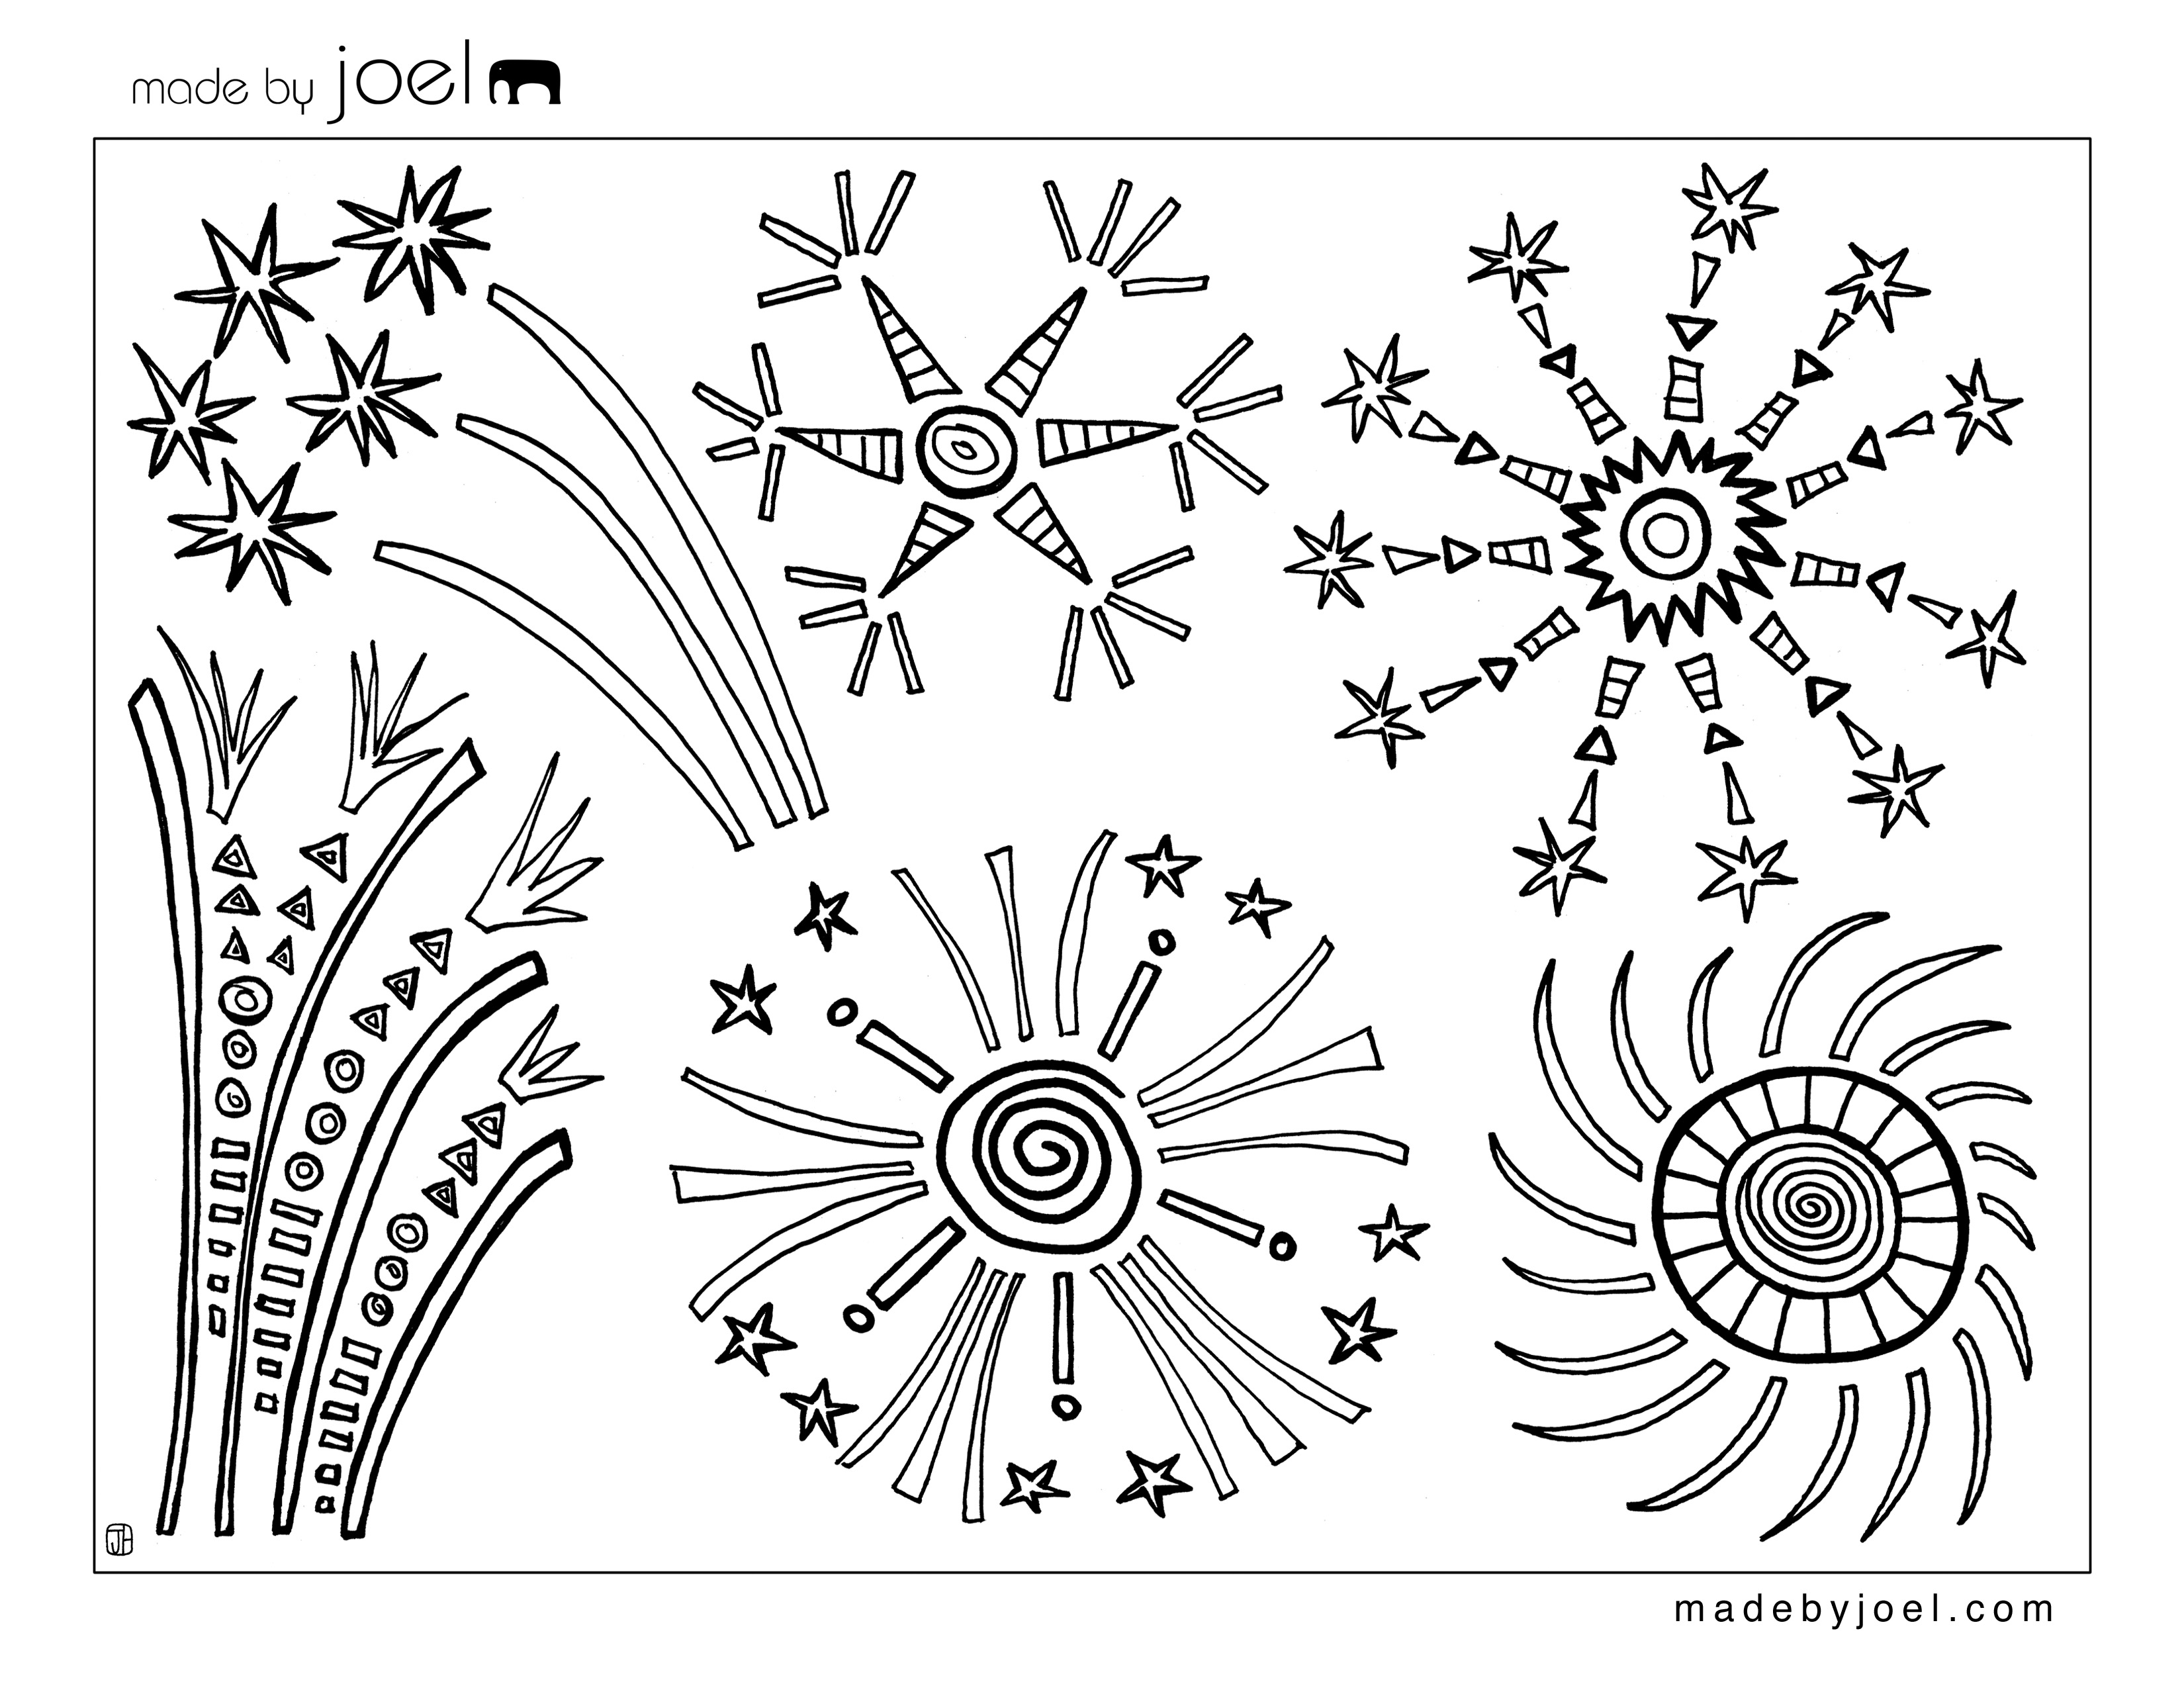 graphic about Free Printable 4th of July Coloring Pages known as Free of charge Printable 4th Of July Coloring Webpages at